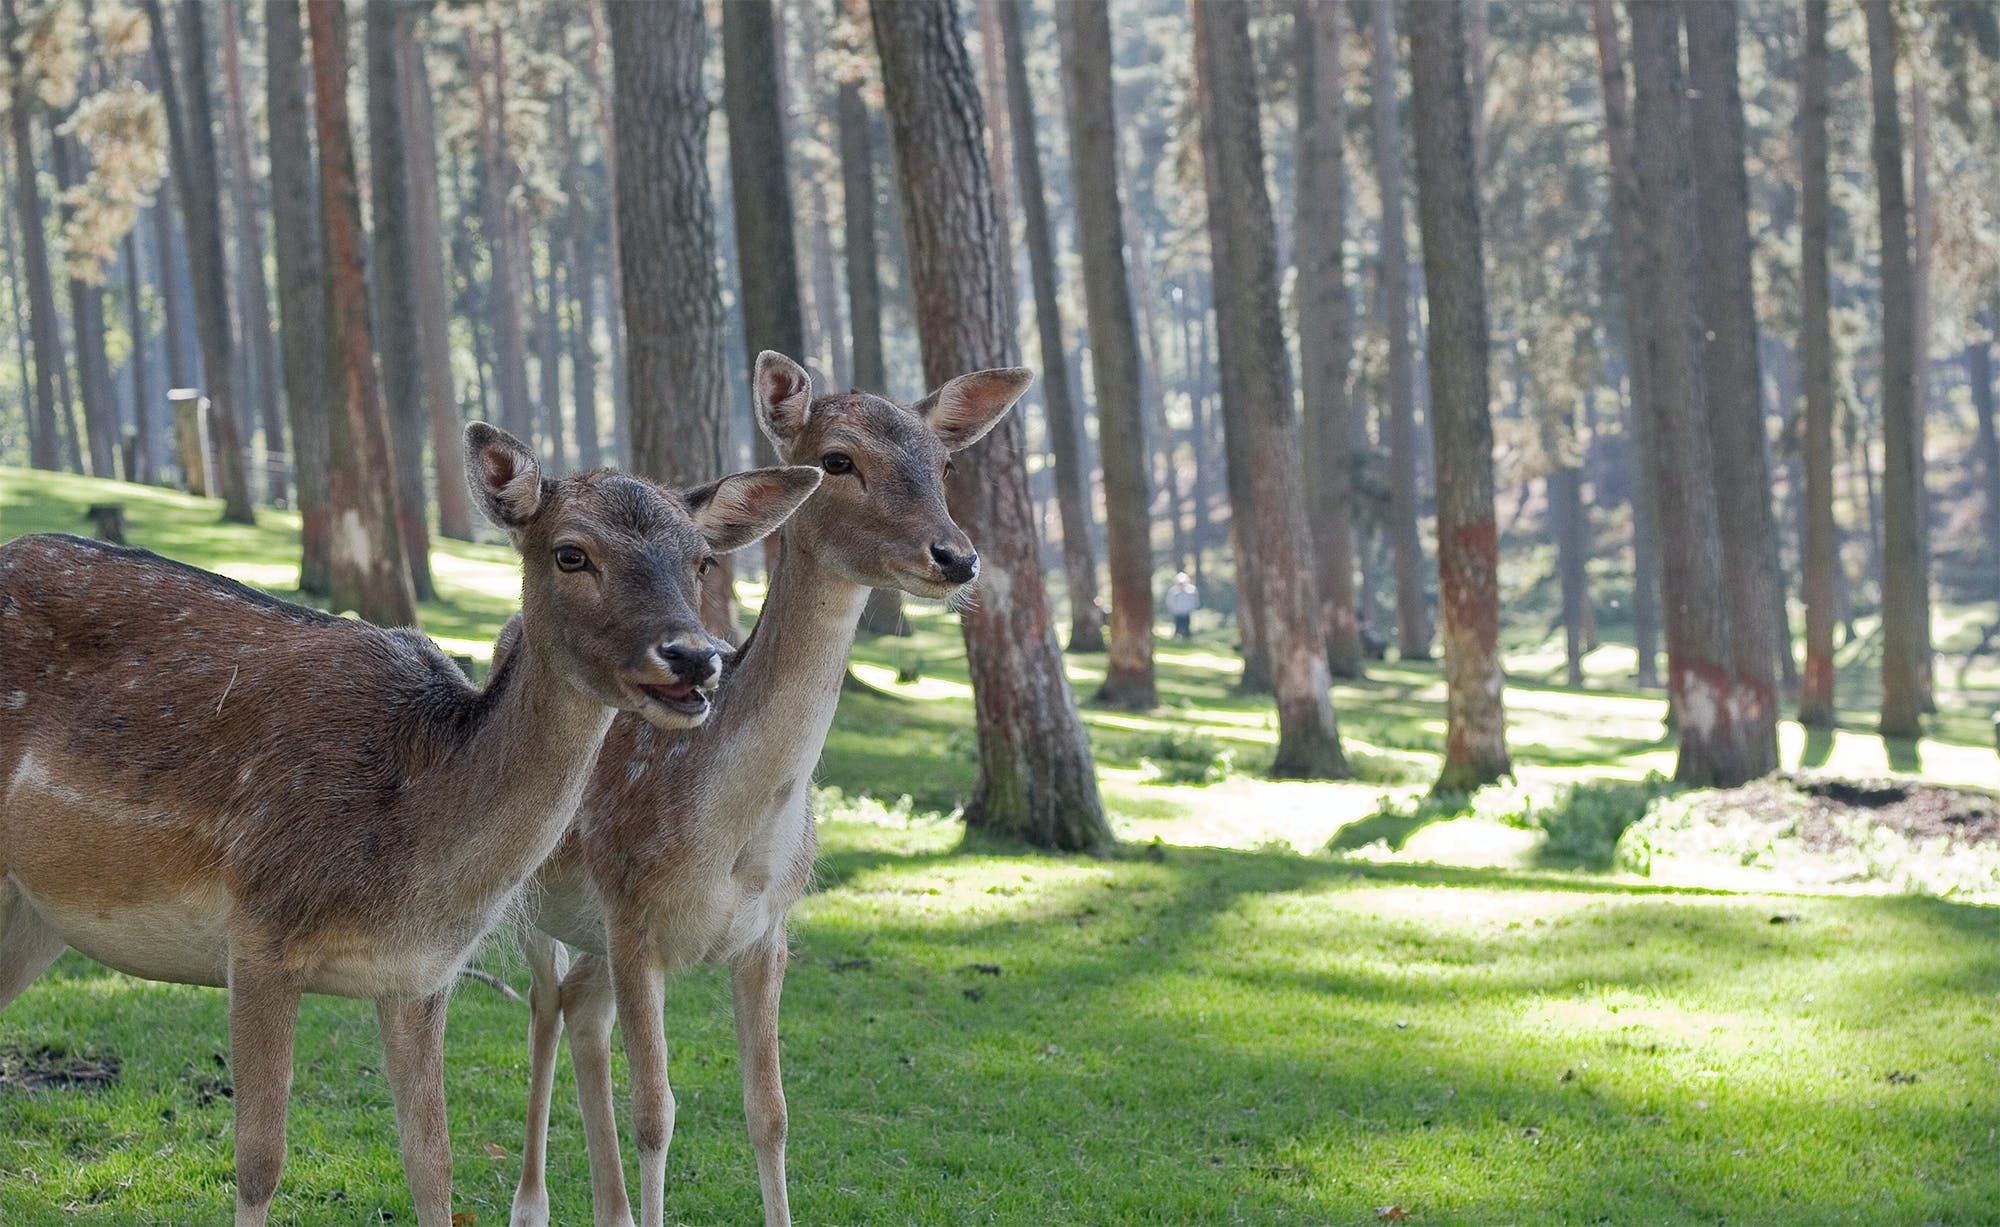 Two Brown Deer Standing in Forest